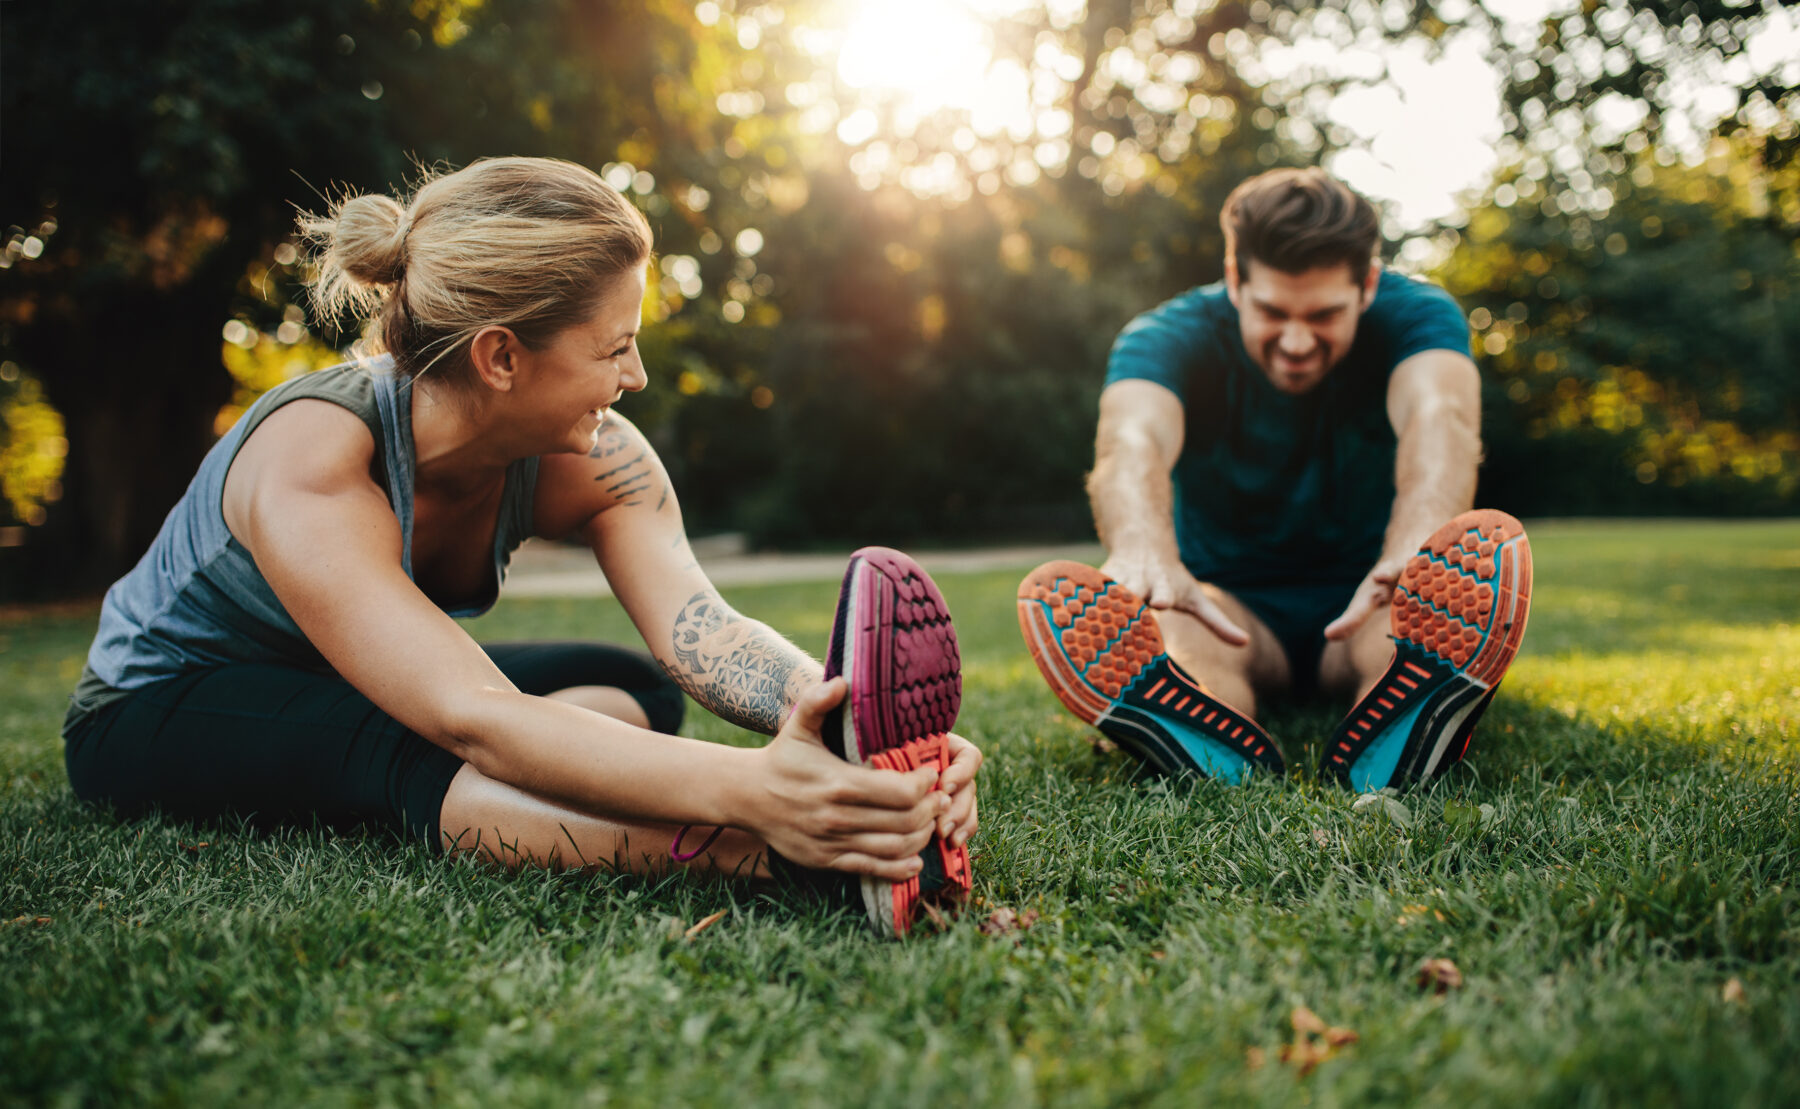 Male and female human sitting on lawn stretching in exercise clothing.